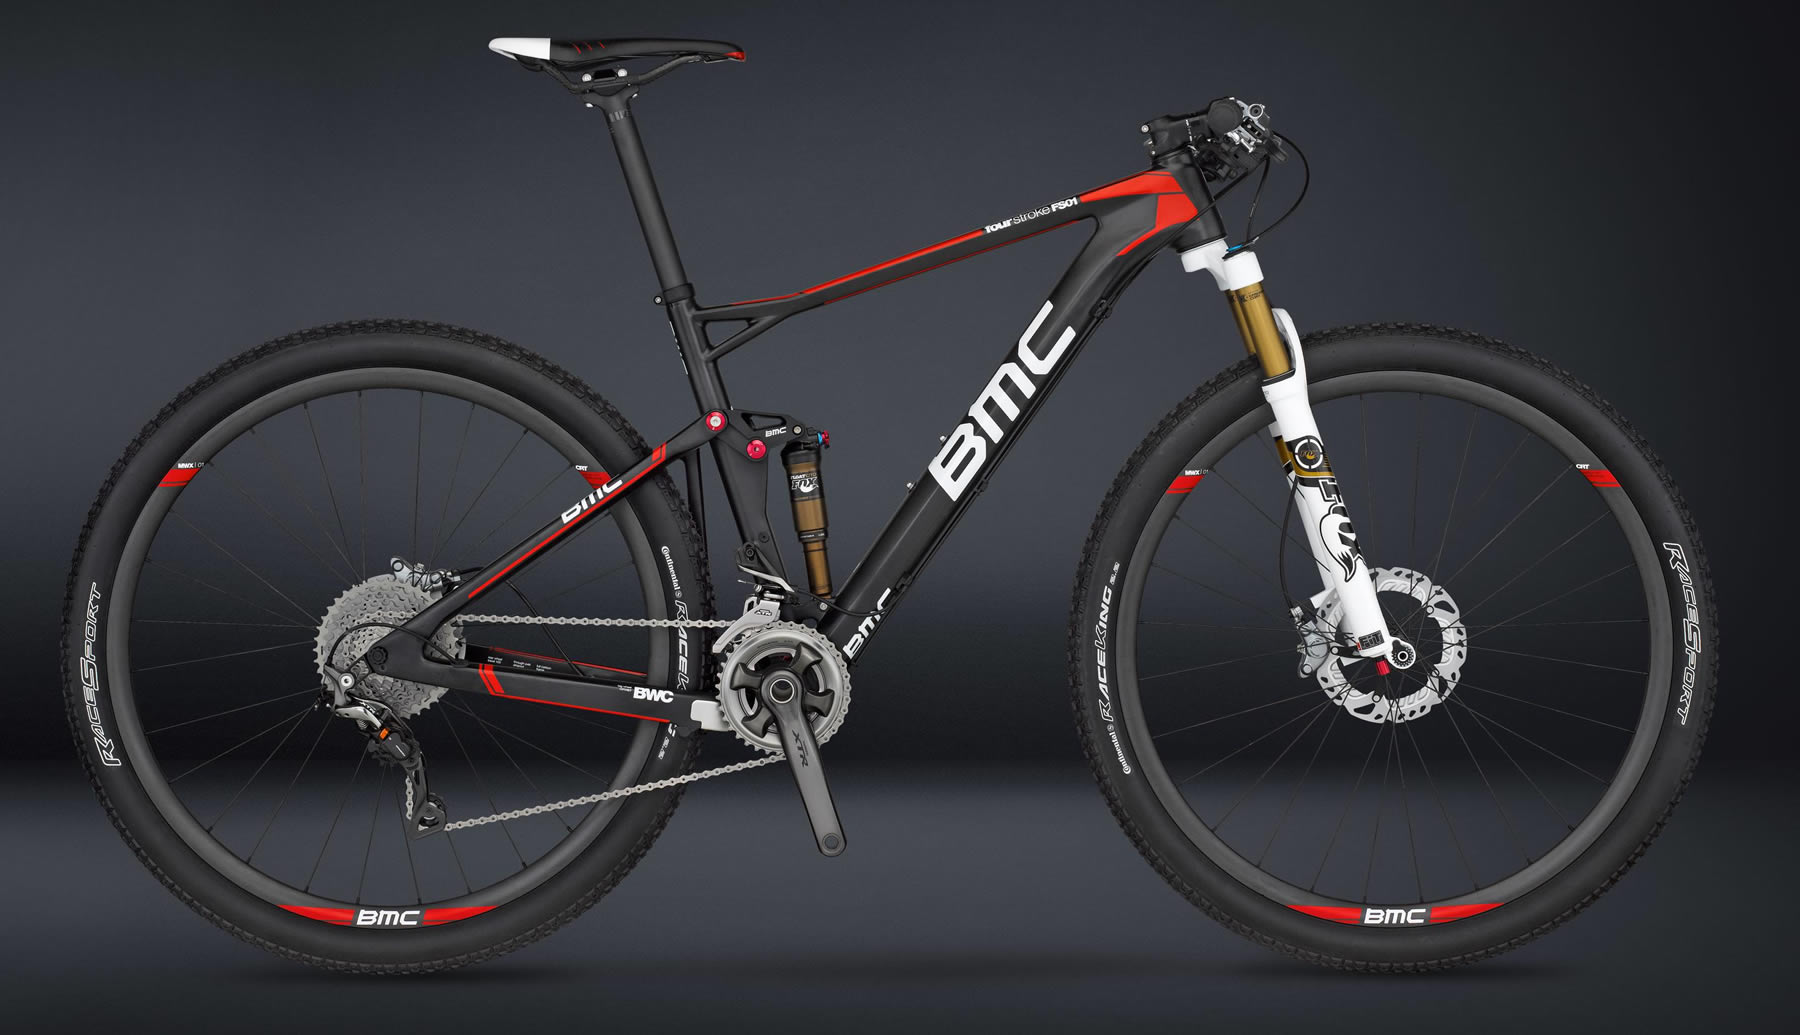 Bmc Fourstroke Fs01 Winner Of The 2014 World Cup Xco